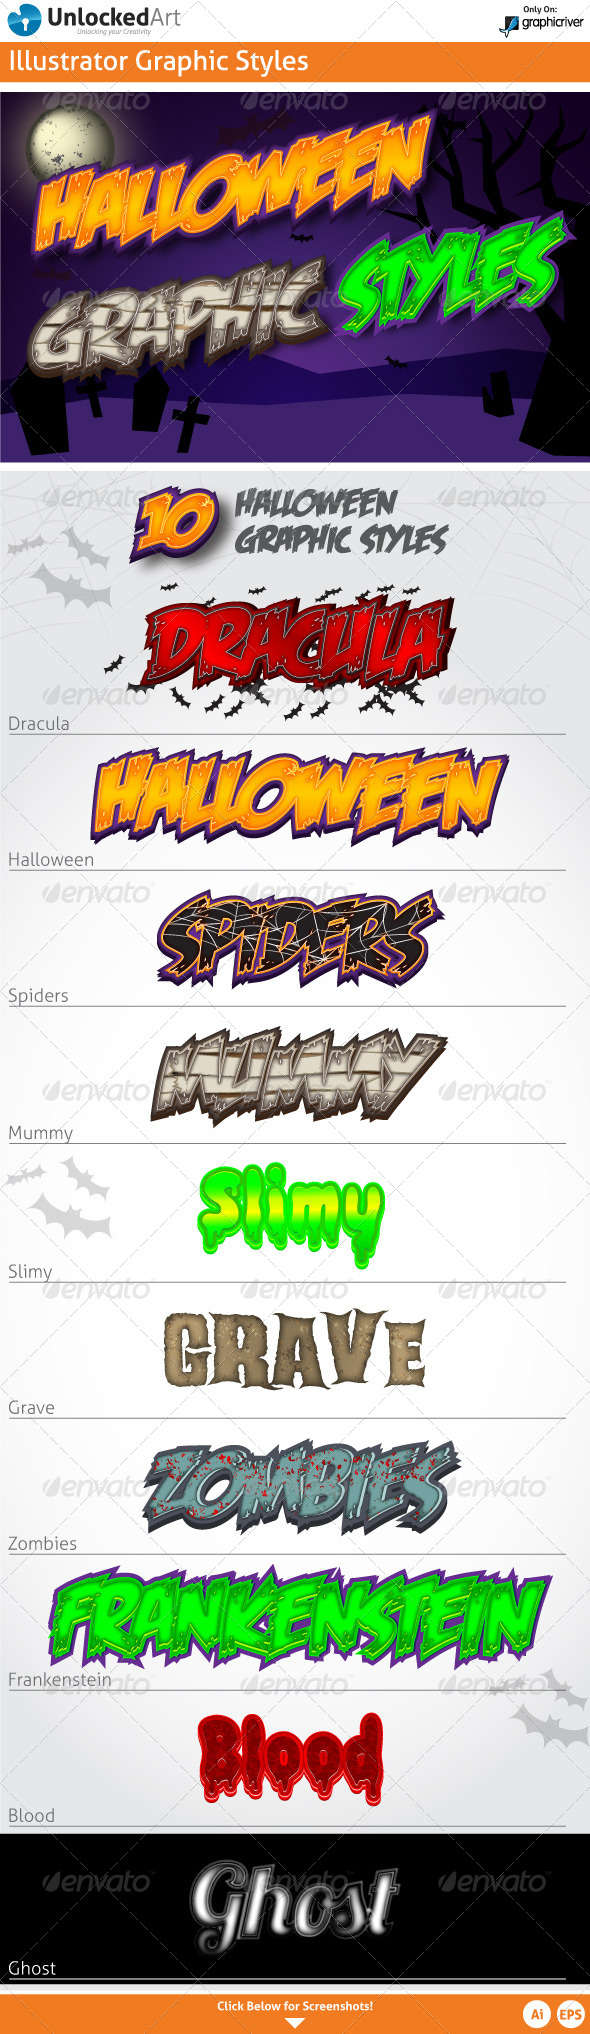 GraphicRiver Halloween Graphic Styles 5607098